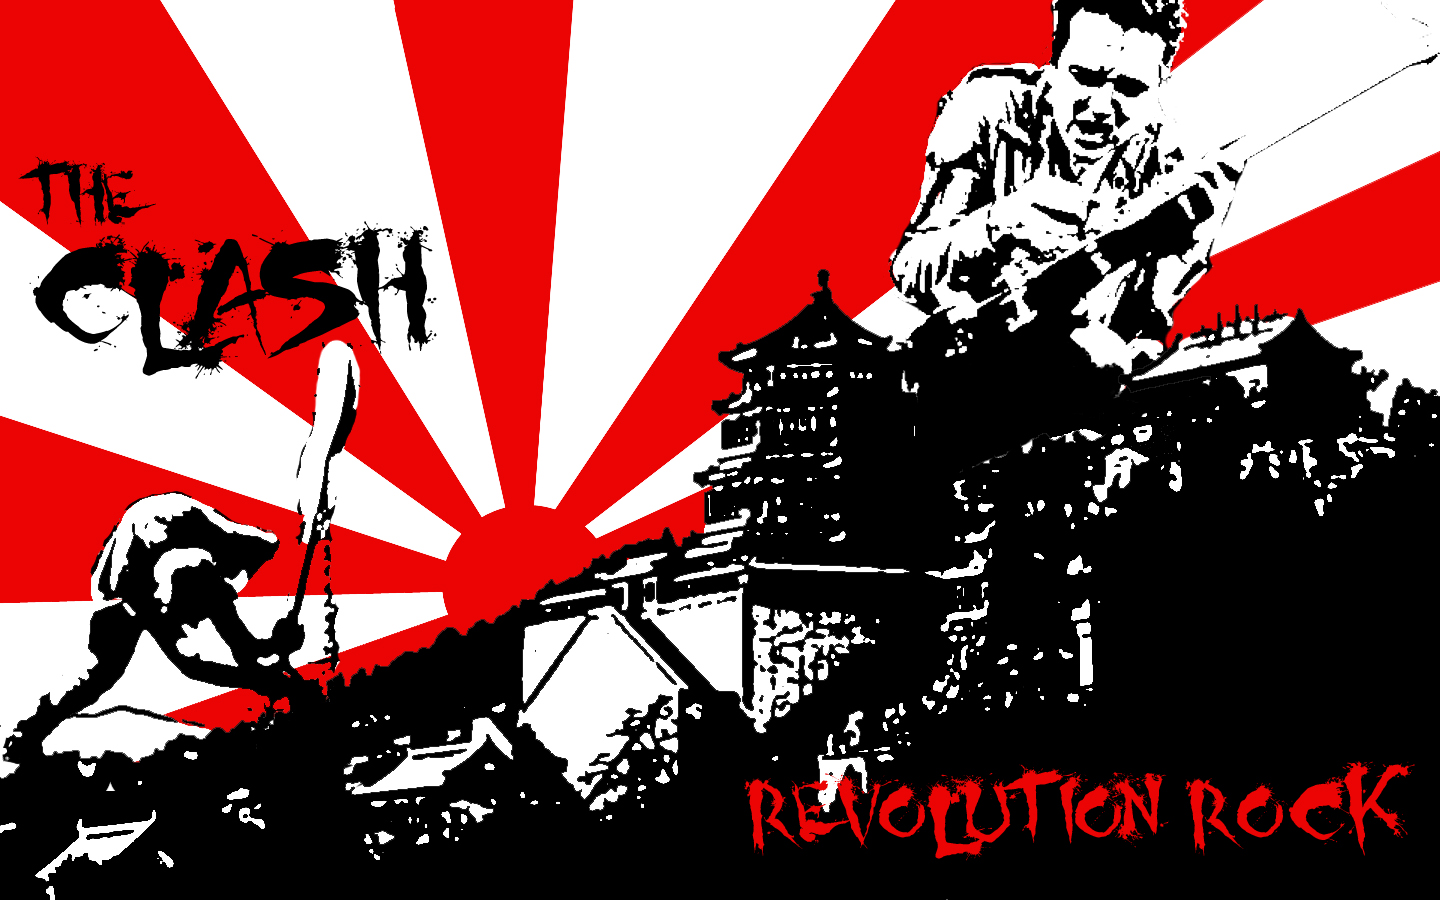 The Clash - 1 - 1440 x 900 by jhawkins8385 on DeviantArt